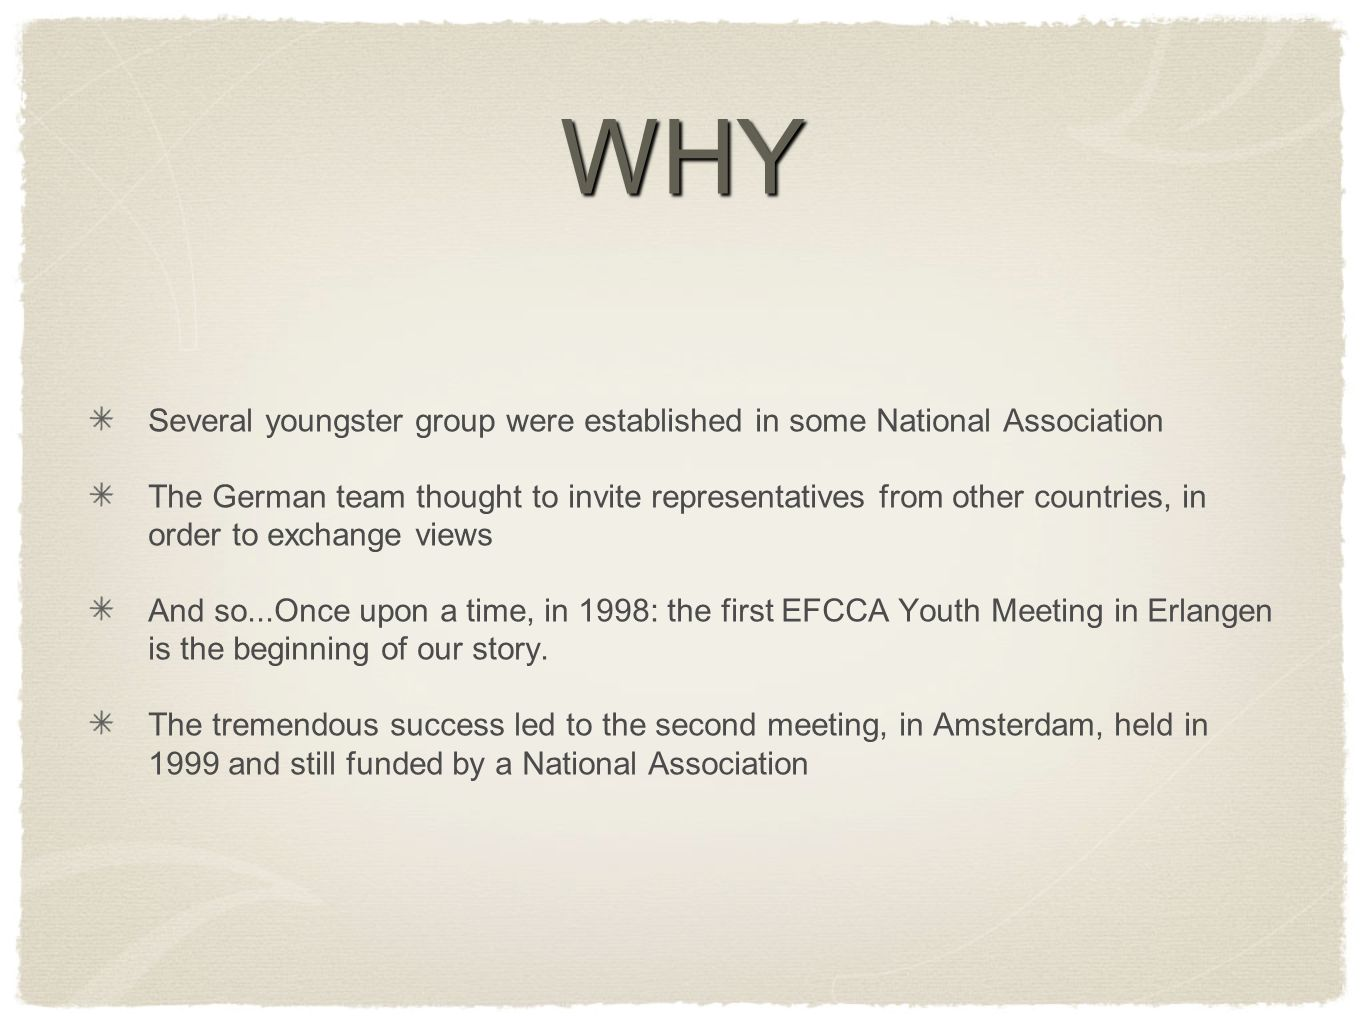 WHY Several youngster group were established in some National Association The German team thought to invite representatives from other countries, in order to exchange views And so...Once upon a time, in 1998: the first EFCCA Youth Meeting in Erlangen is the beginning of our story.